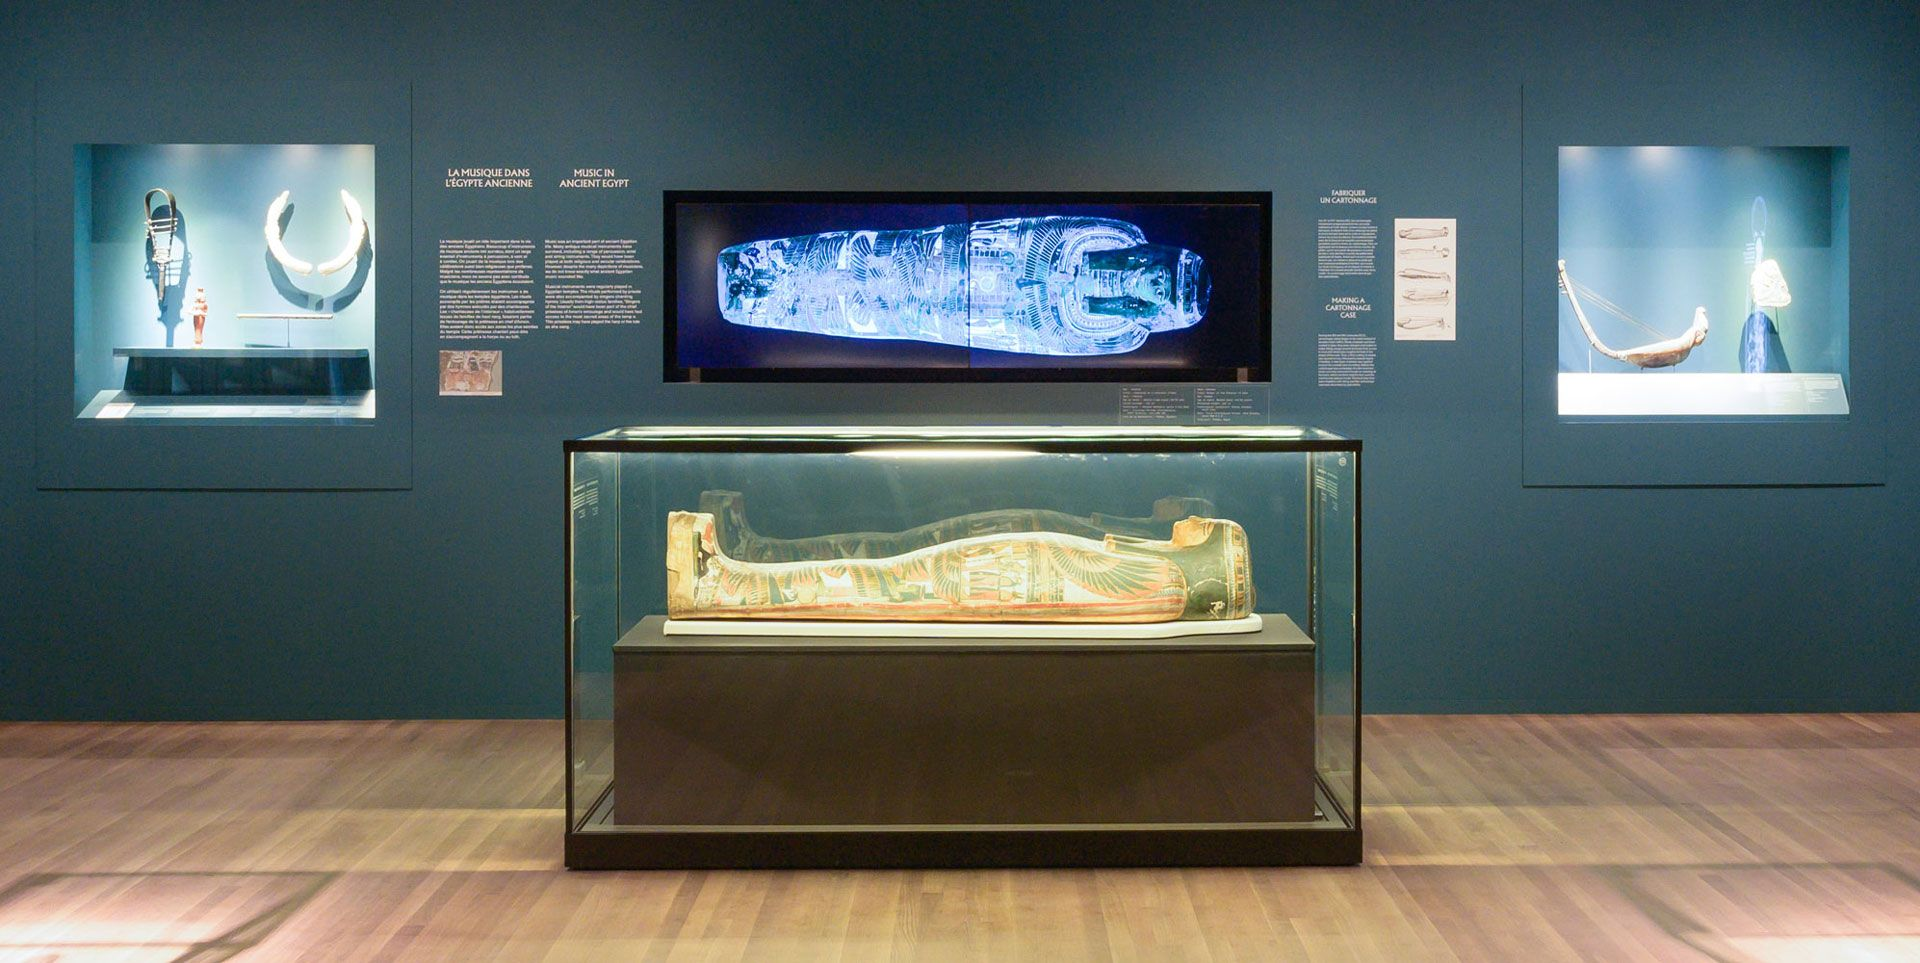 sarcophagus and x-rays from the Montreal Museum of Fine Arts exhibition Egyptian Mummies: Exploring Ancient Lives